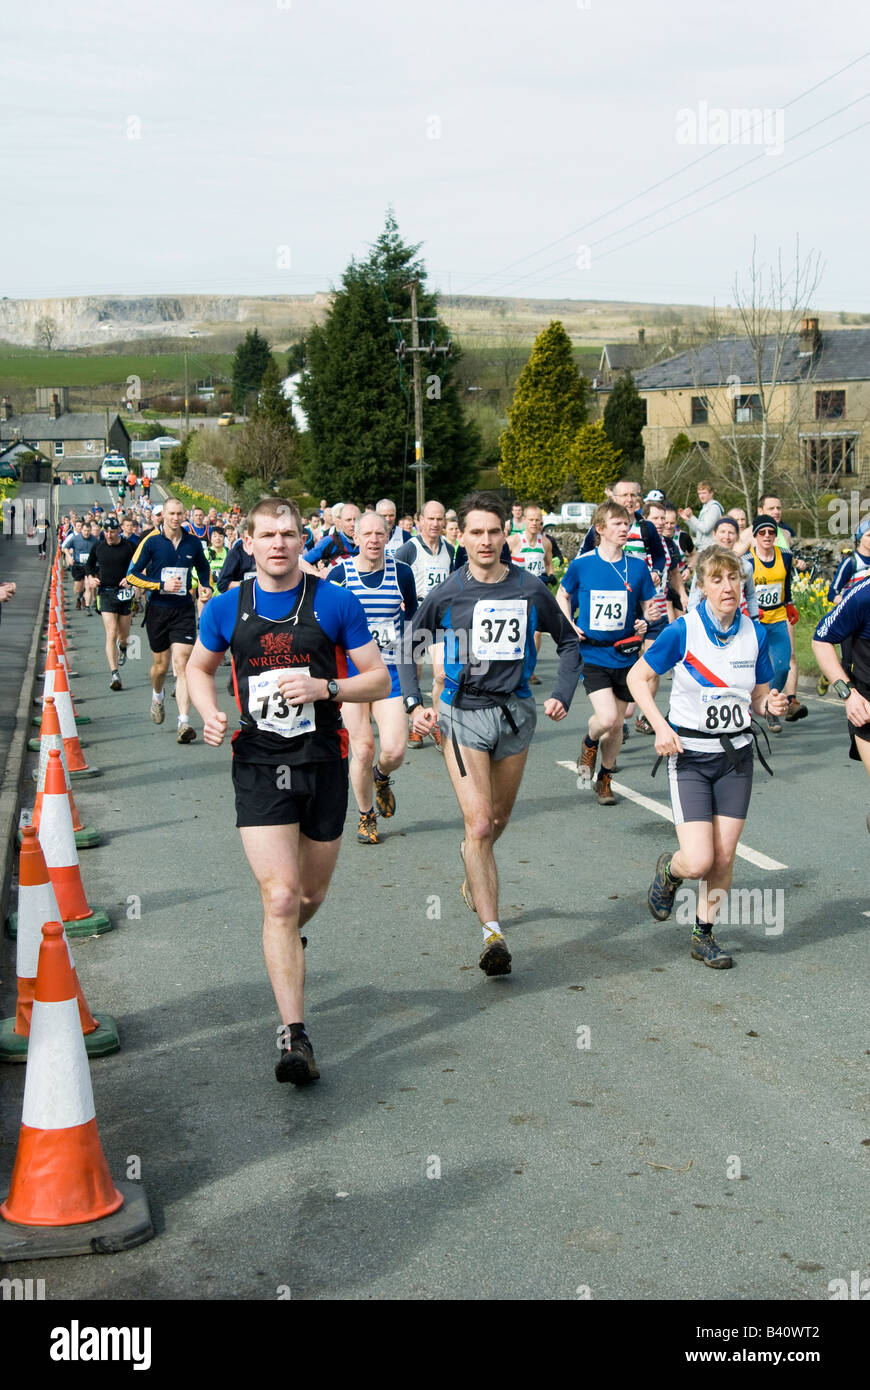 Runners competing in the three peaks long distance race challenge in Yorkshire England - Stock Image